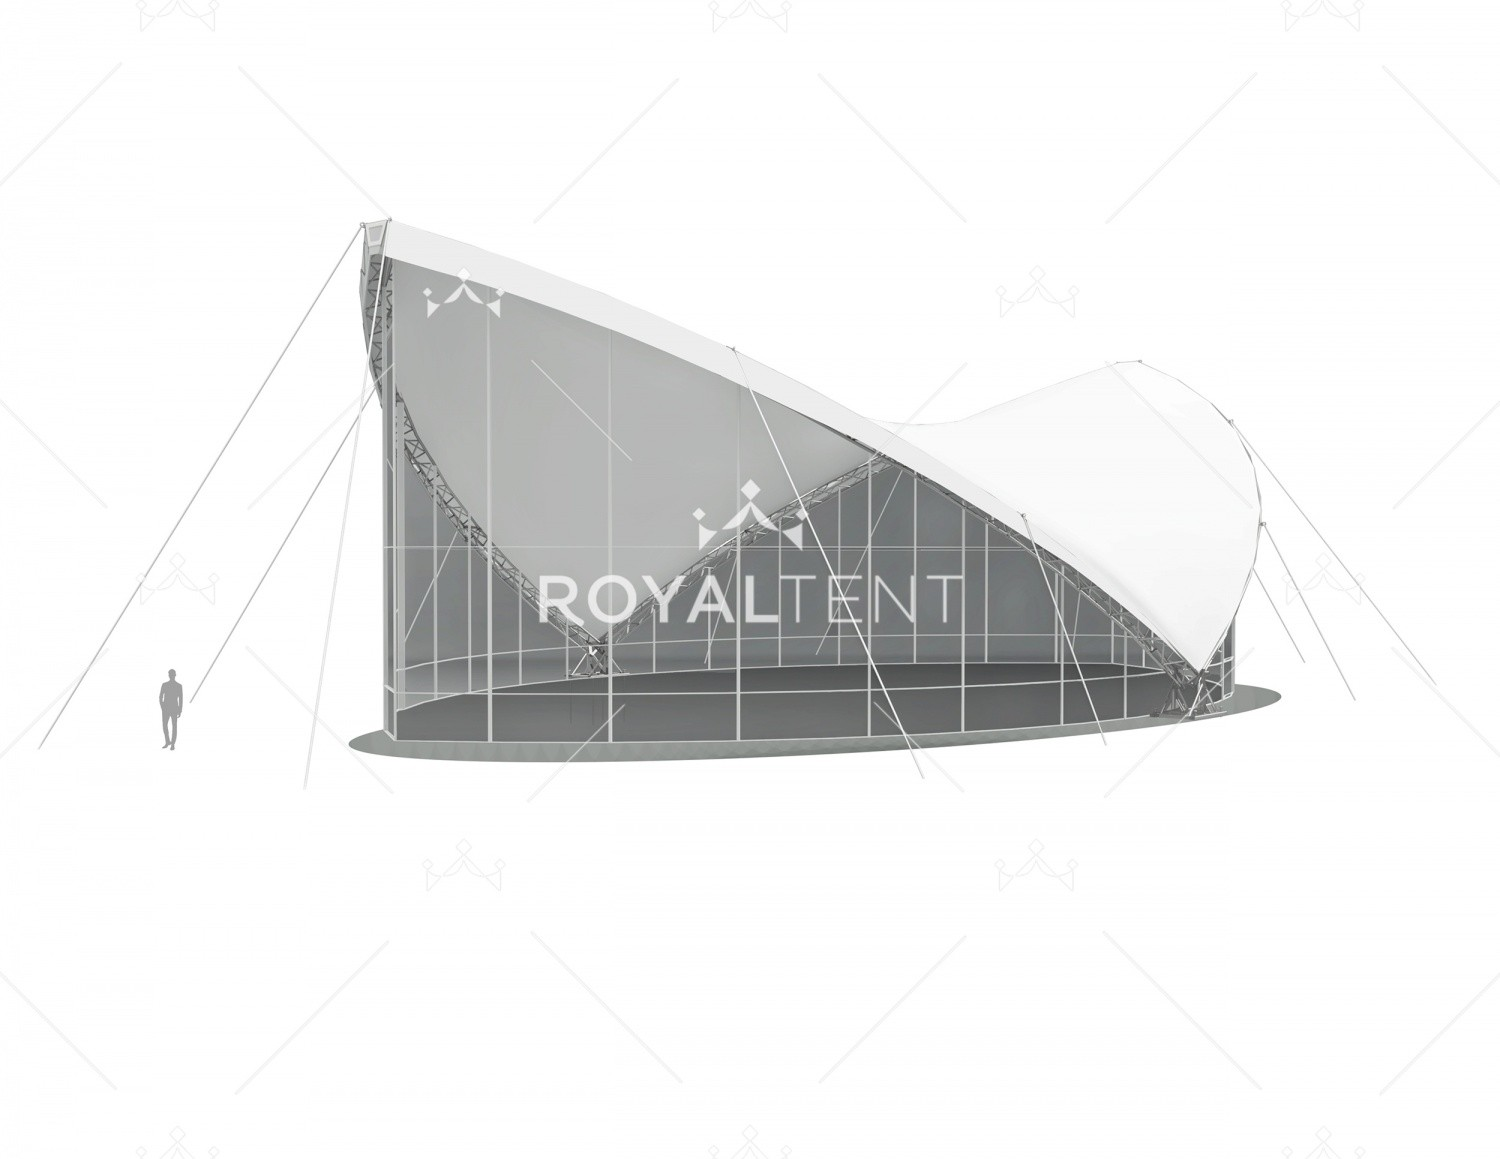 https://royaltent.me/houses_images/tent6_1_200116072536.jpg